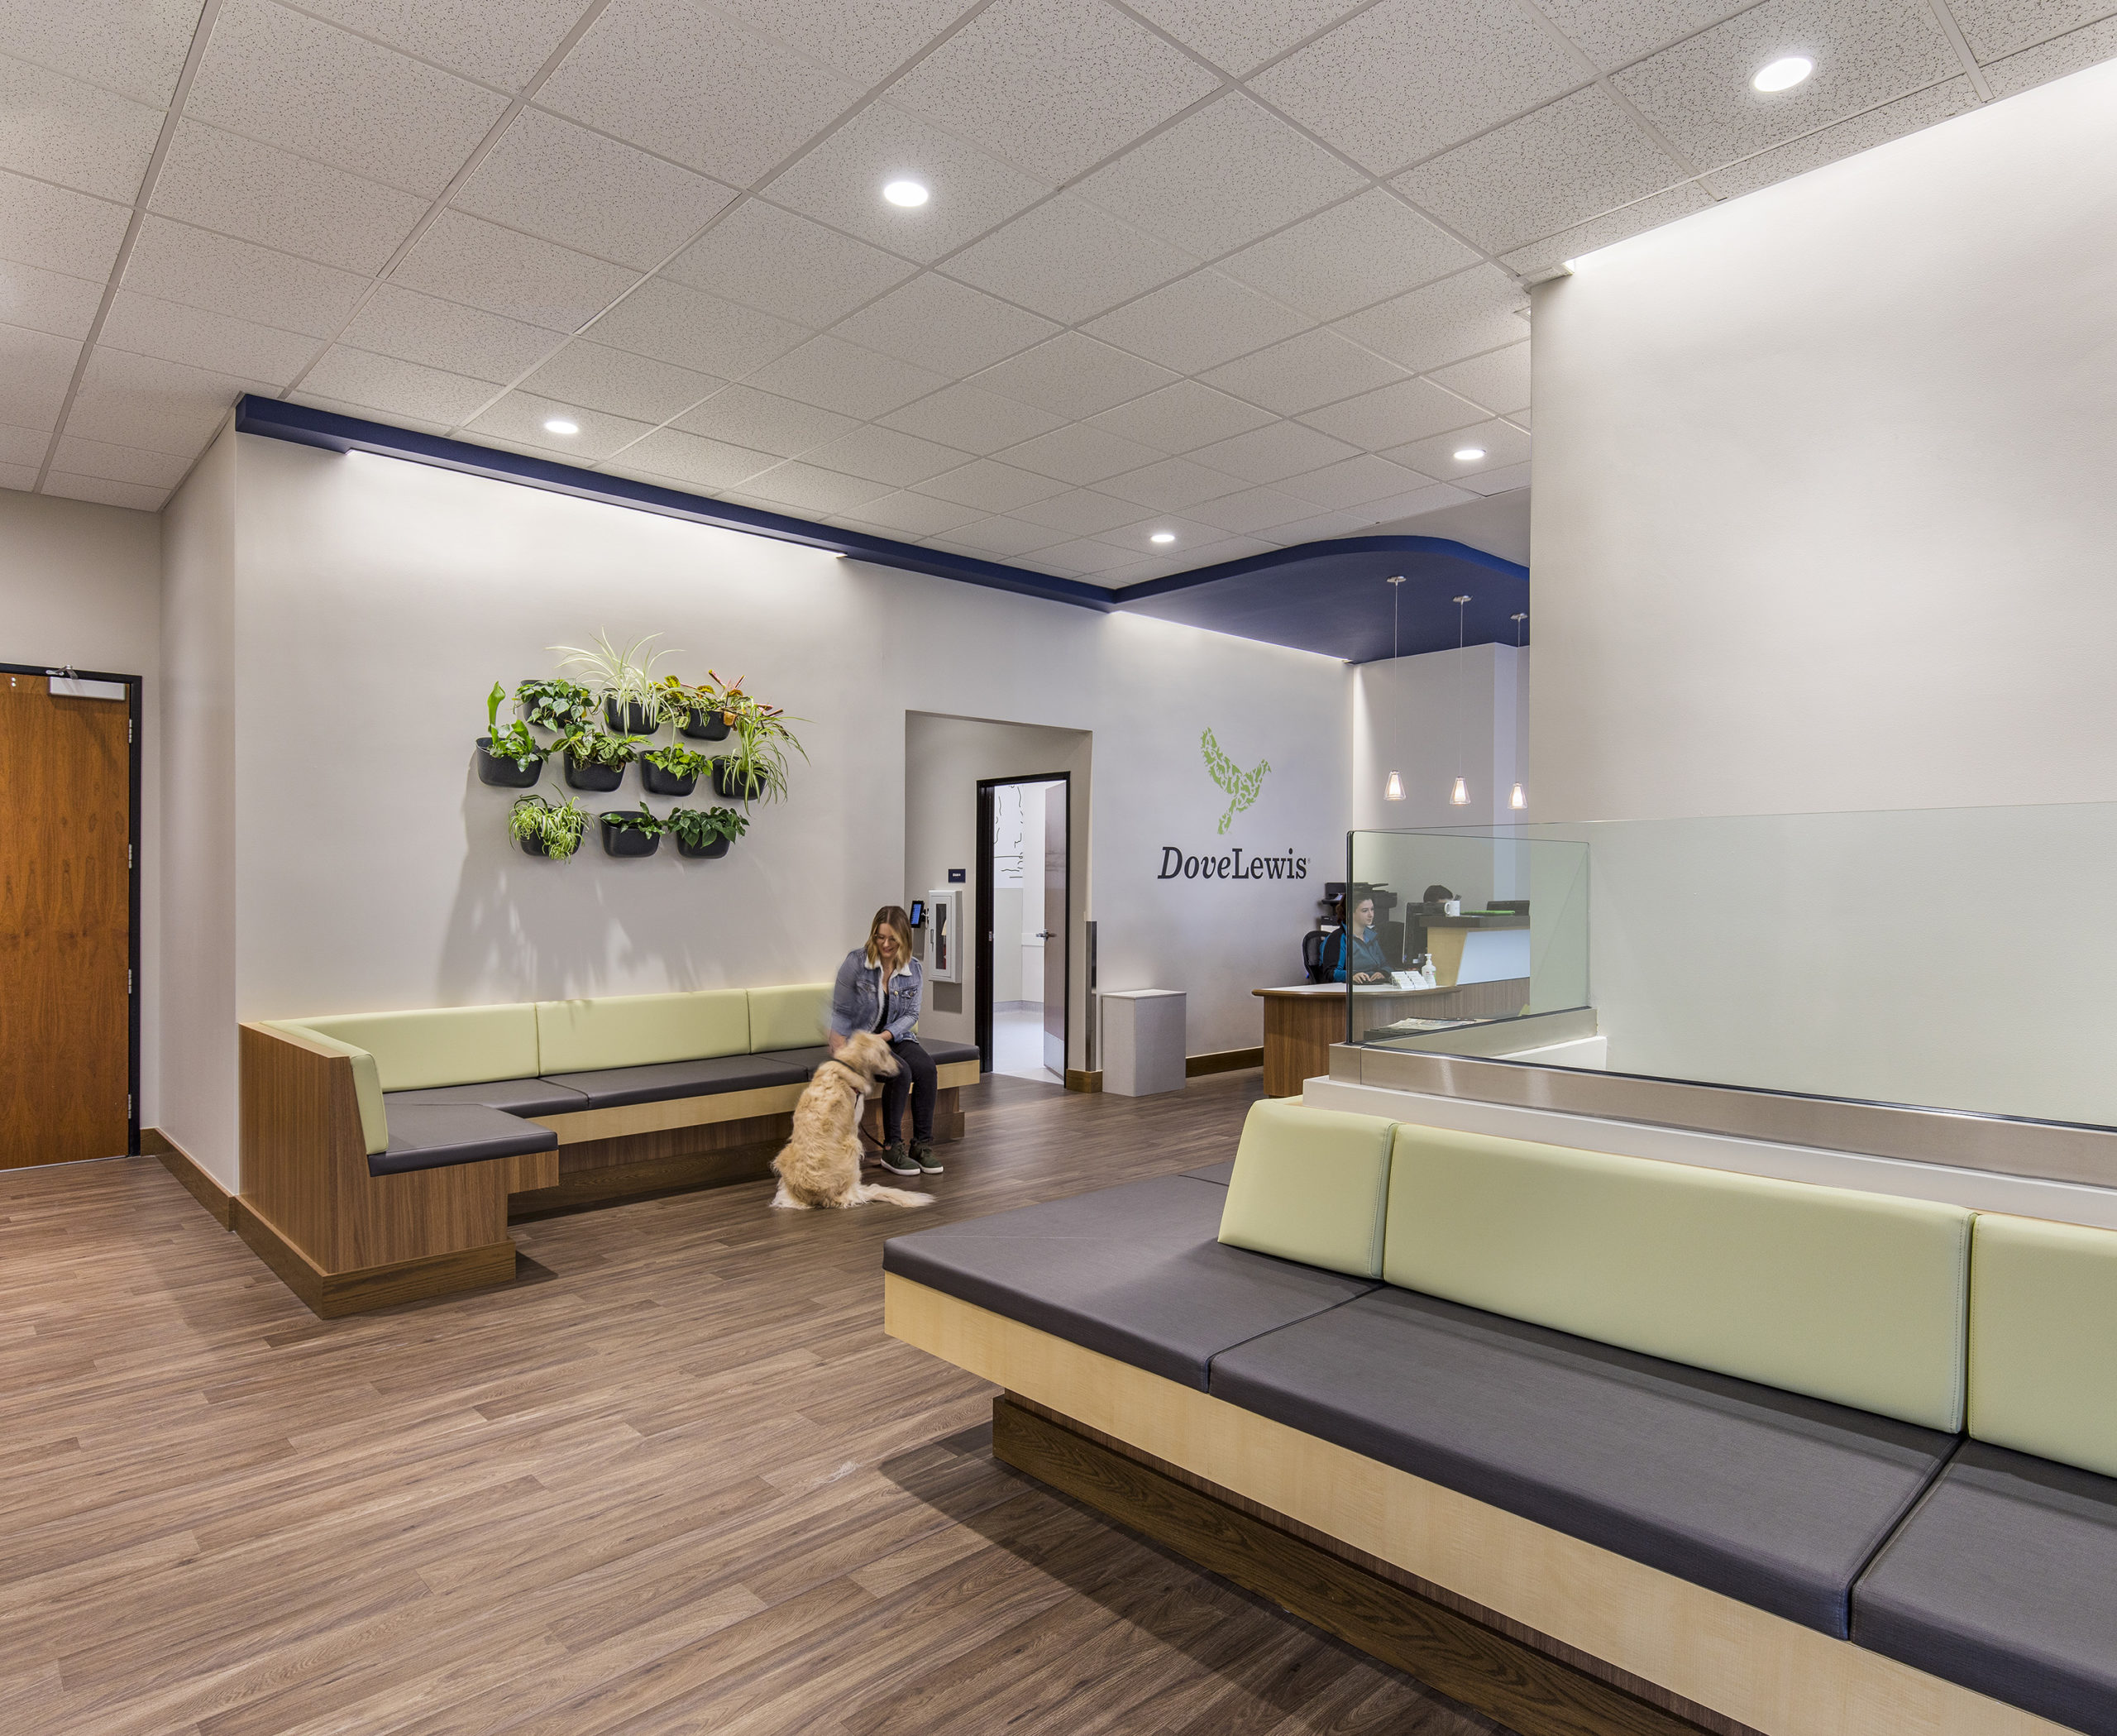 waiting area of Dove Lewis with pet and customer sitting and waiting, featuring live plant wall and LED lighting